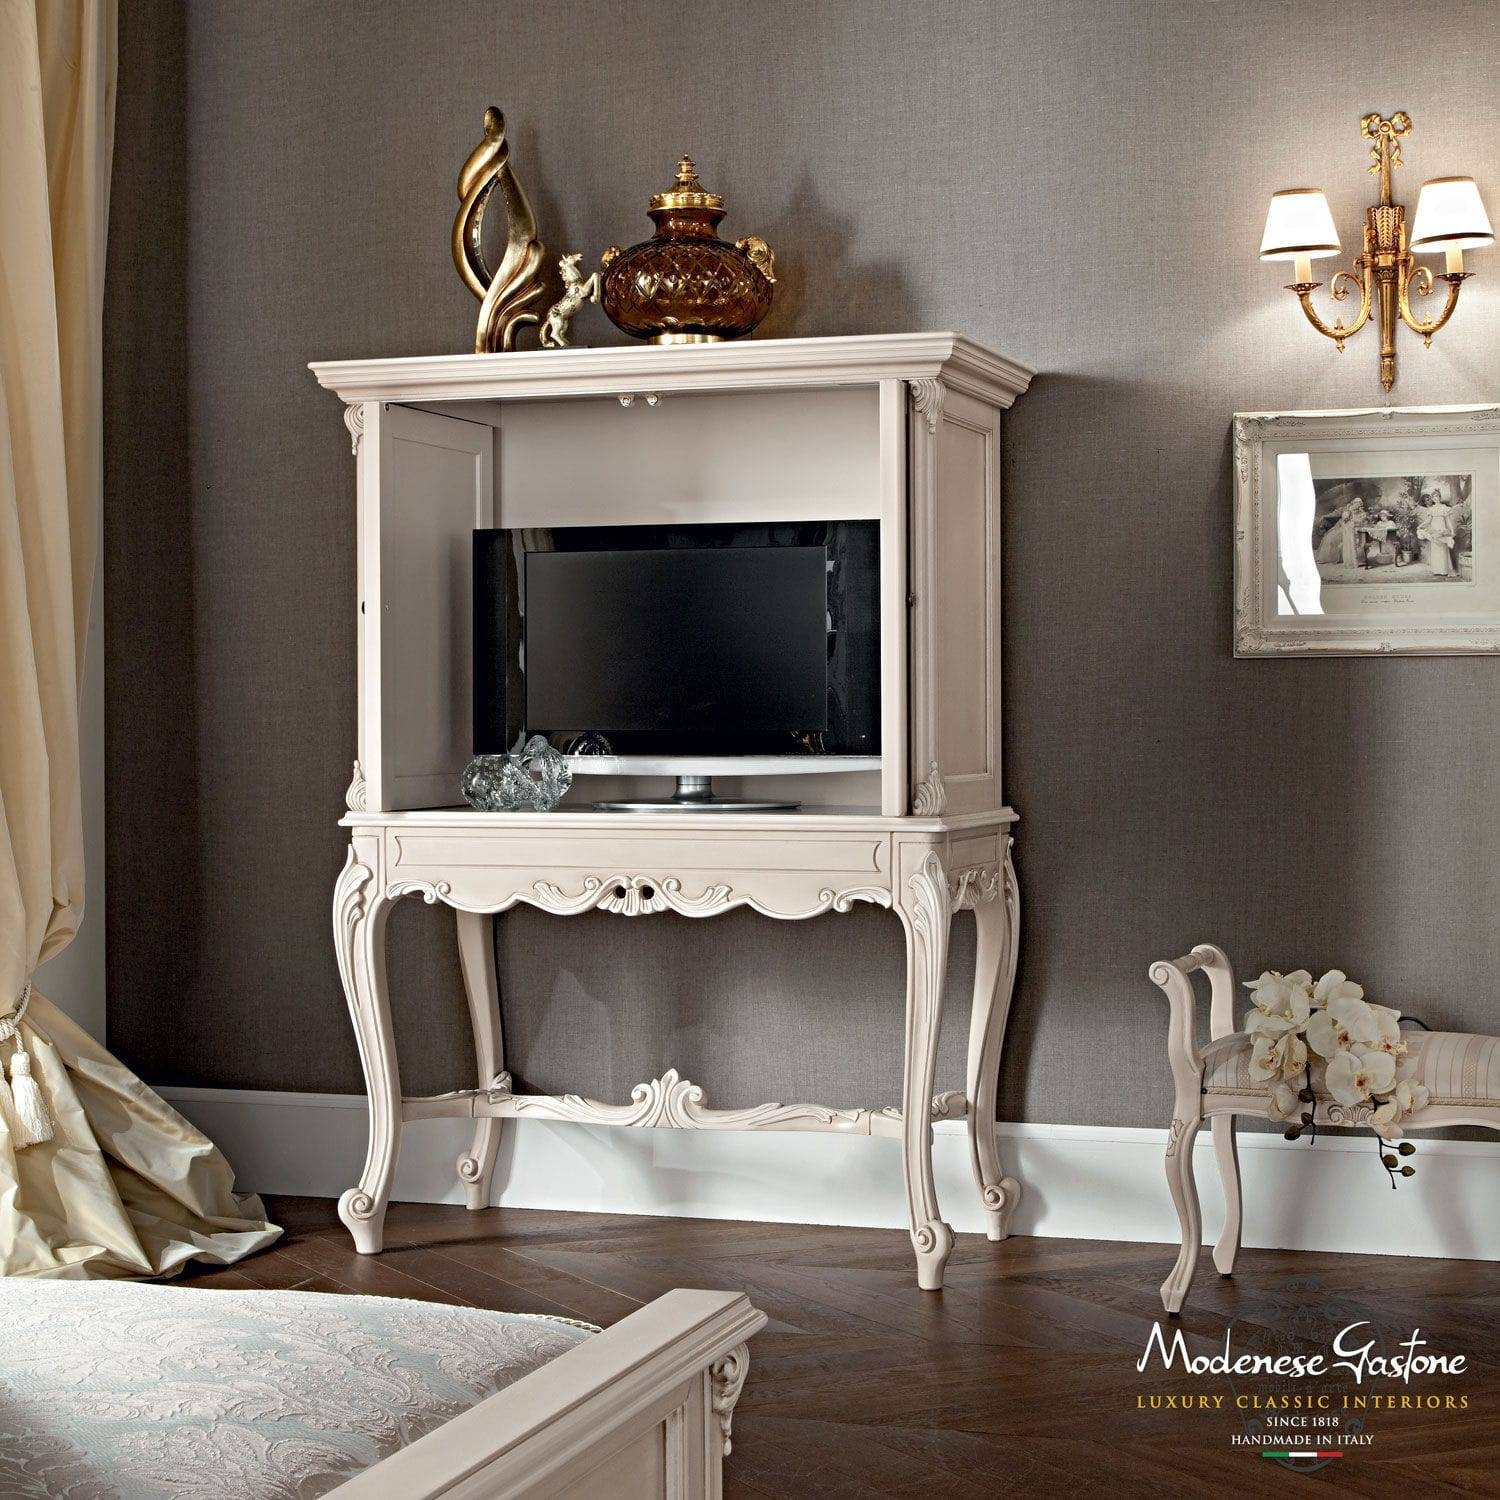 Classic Tv Cabinet / Wooden - Casanova - Modenese Gastone Luxury with regard to Classic Tv Cabinets (Image 9 of 15)